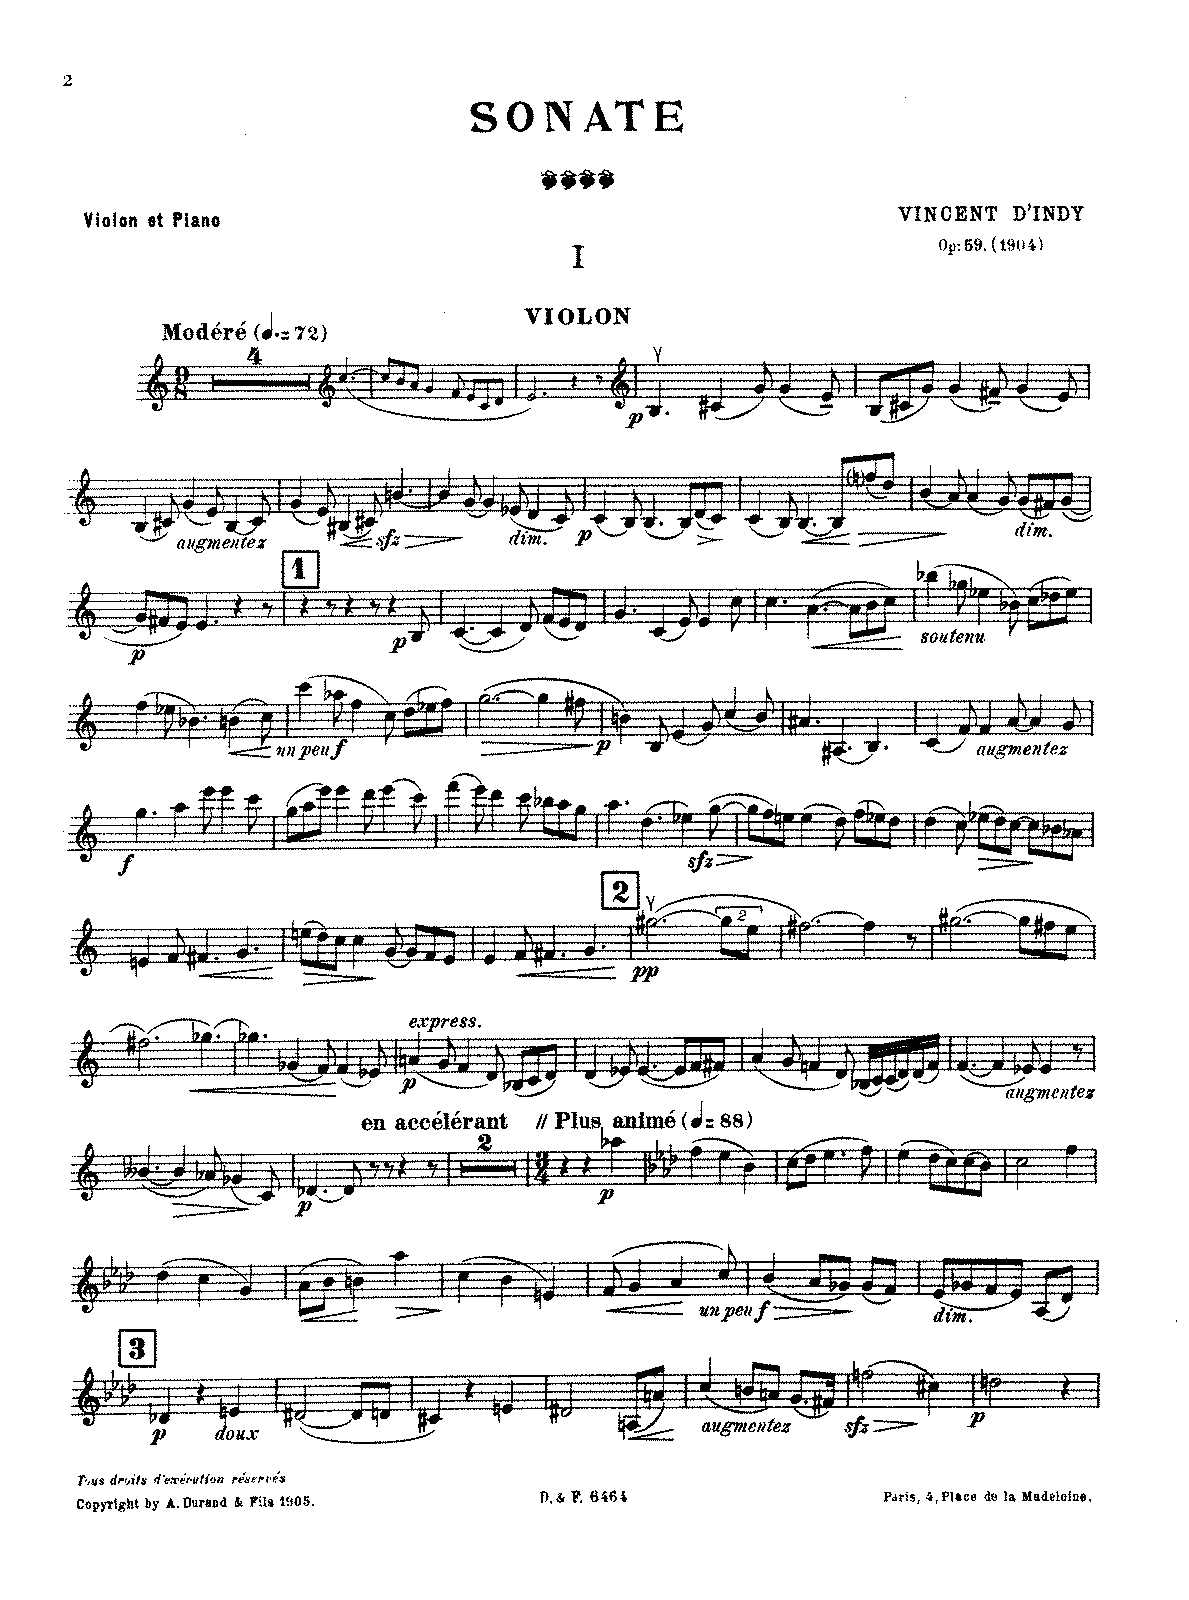 D'Indy - Sonata for Violin and Piano, Op. 59.pdf